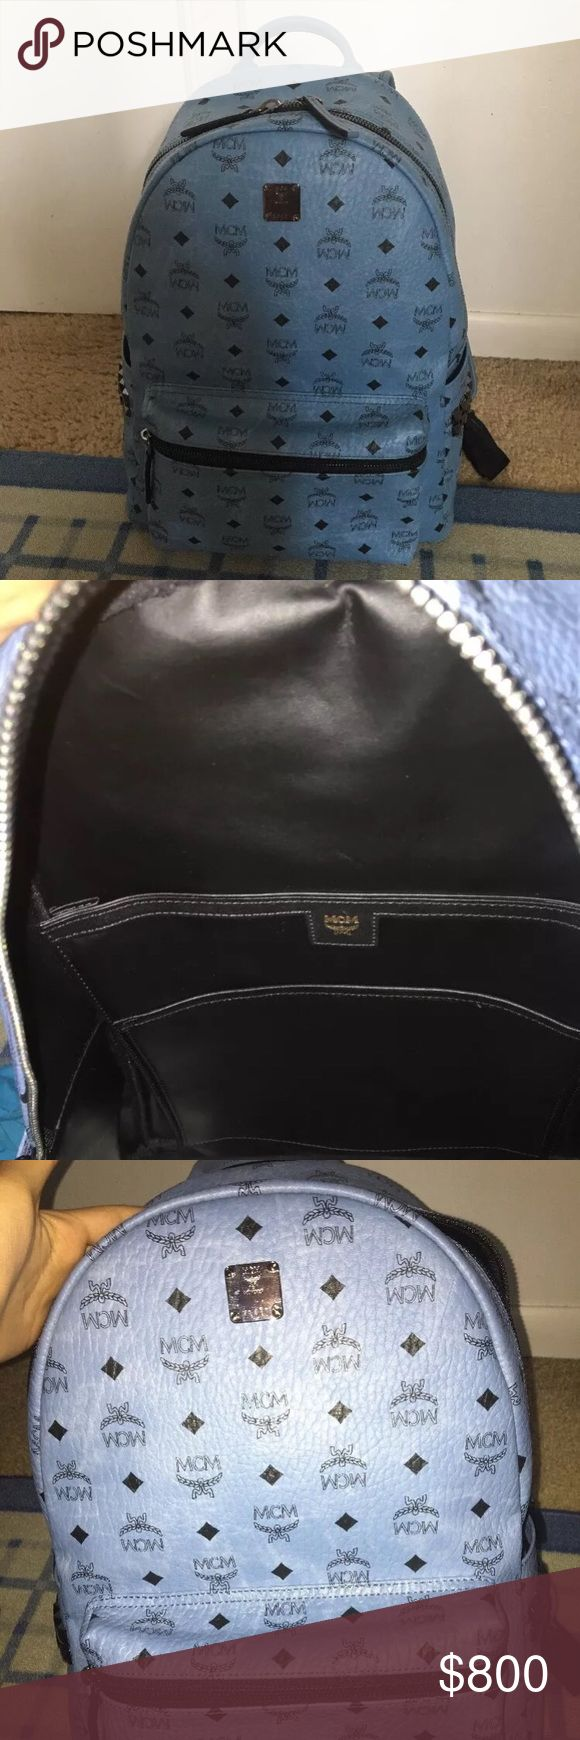 MCM medium backpack Blue mcm backpack. Authentic, never used. Got it from an MCM store. New without tags. MCM Bags Backpacks